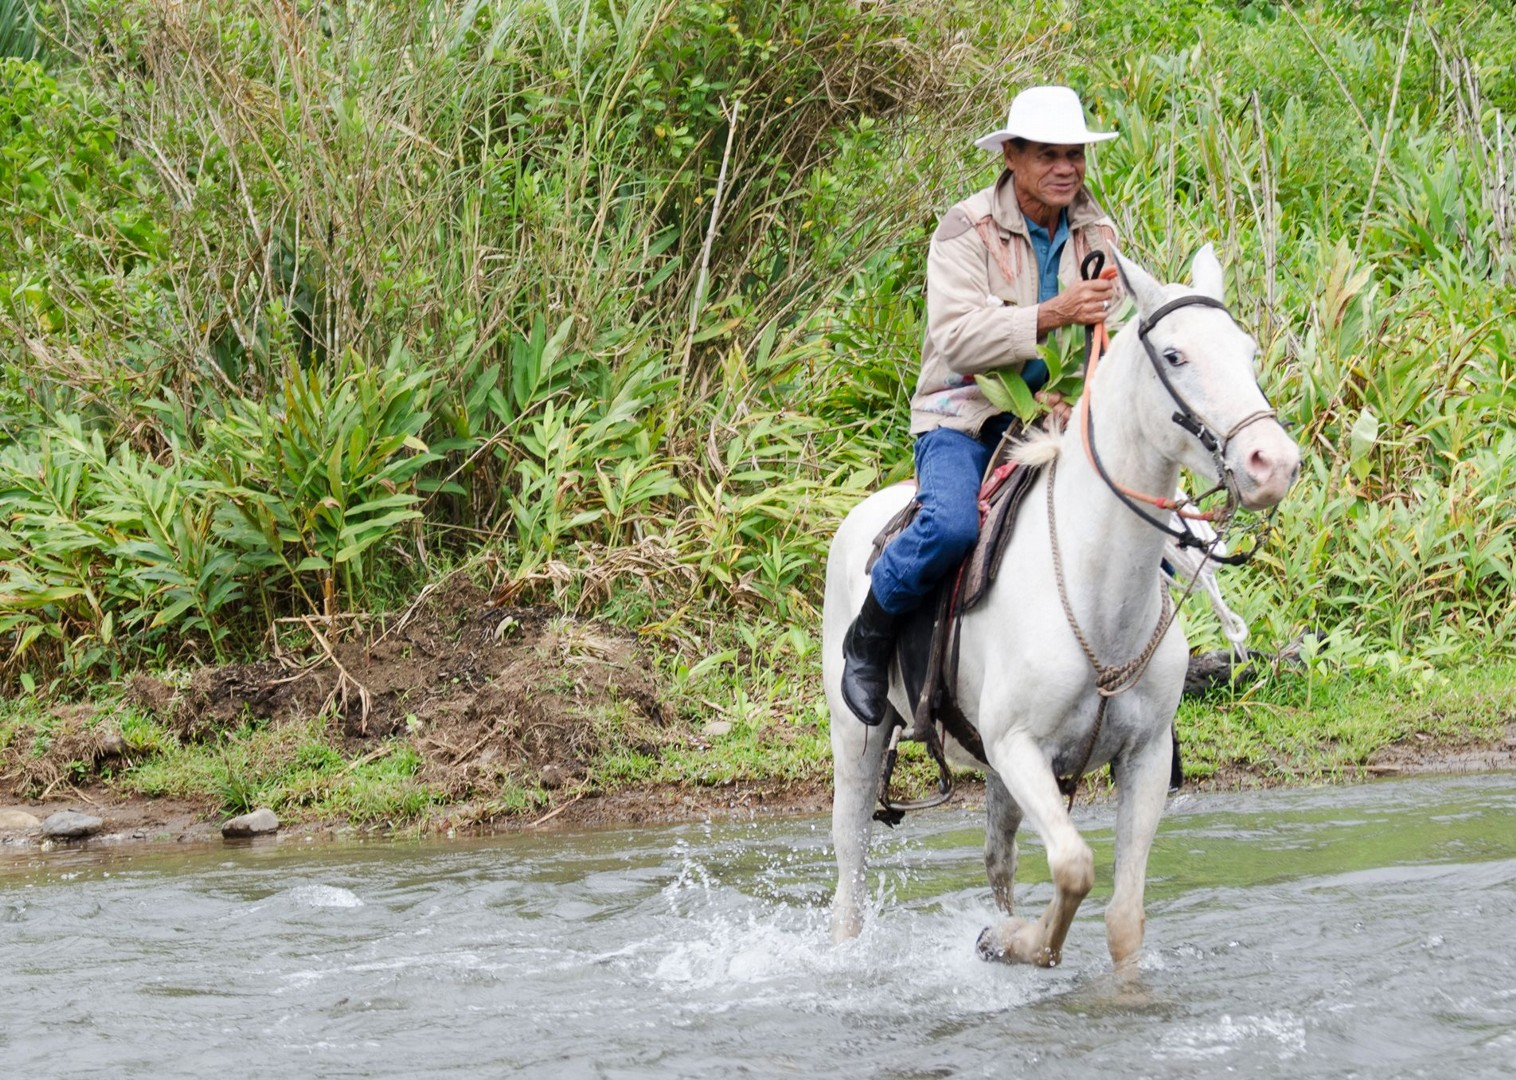 horse-riding-costa-rica-volcanoes-and-valleys.jpg - Costa Rica - Volcanoes and Valleys - Family Cycling